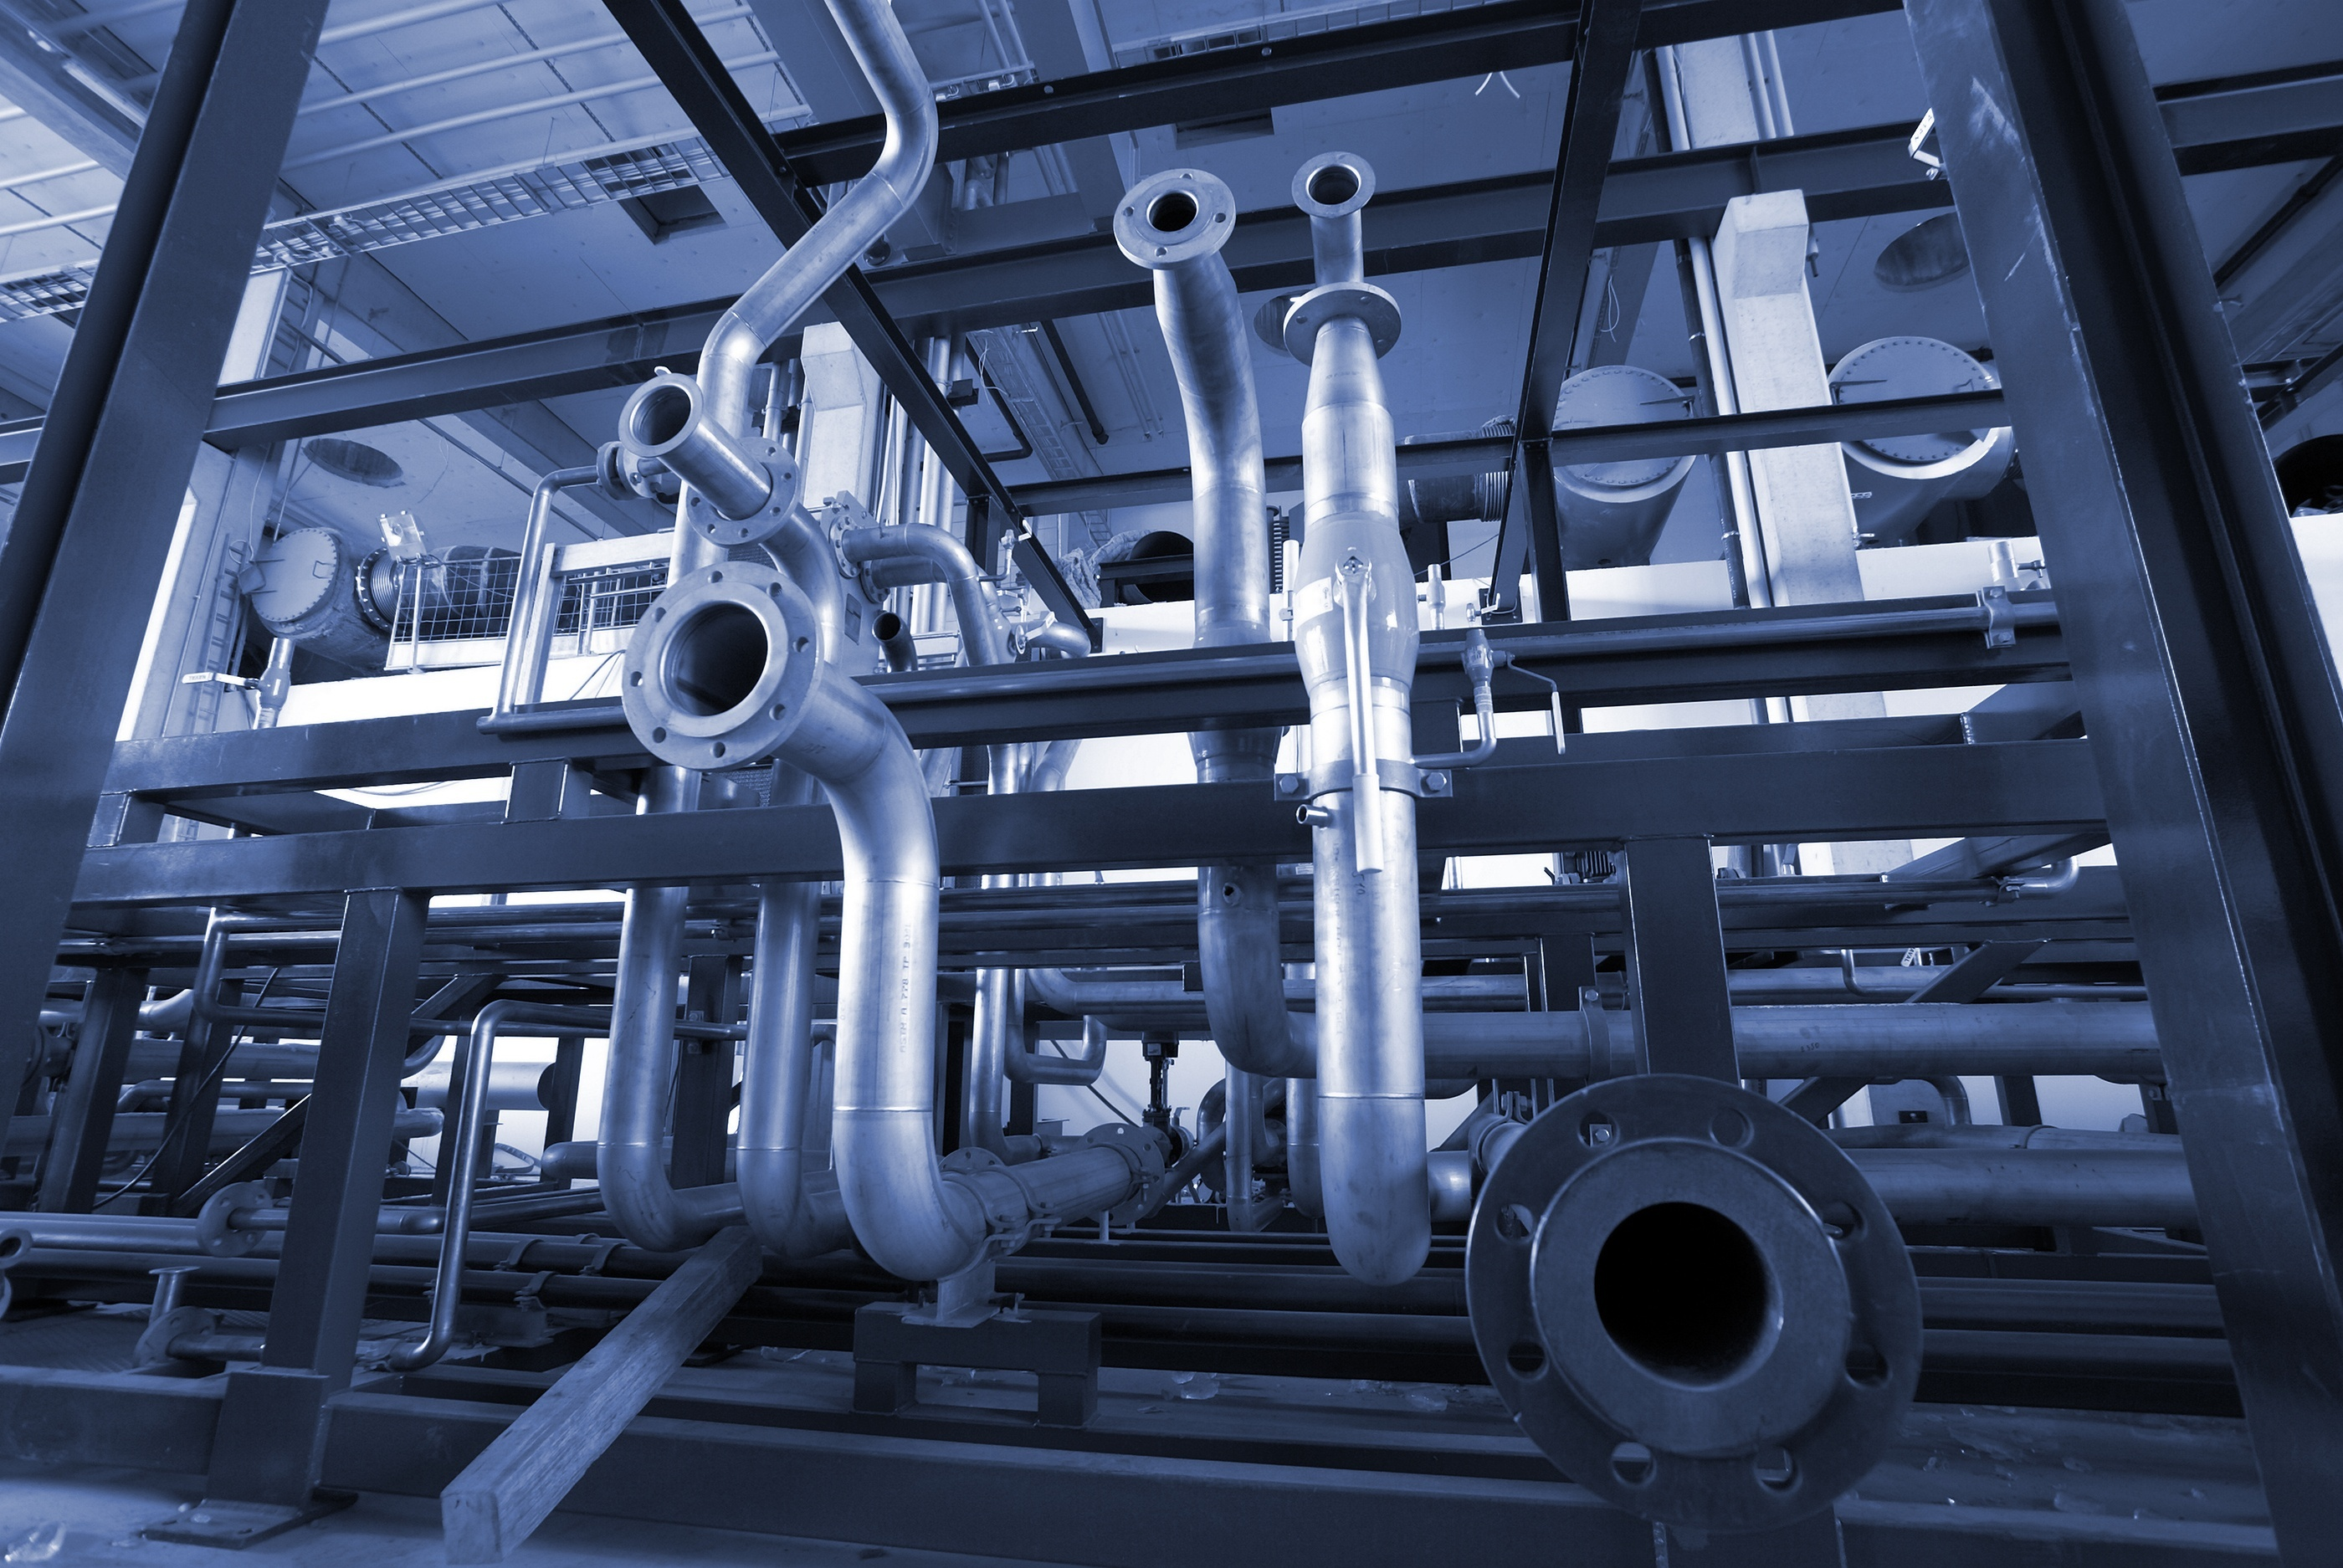 bigstock-Different-Size-And-Shaped-Pipe-7398666.jpg